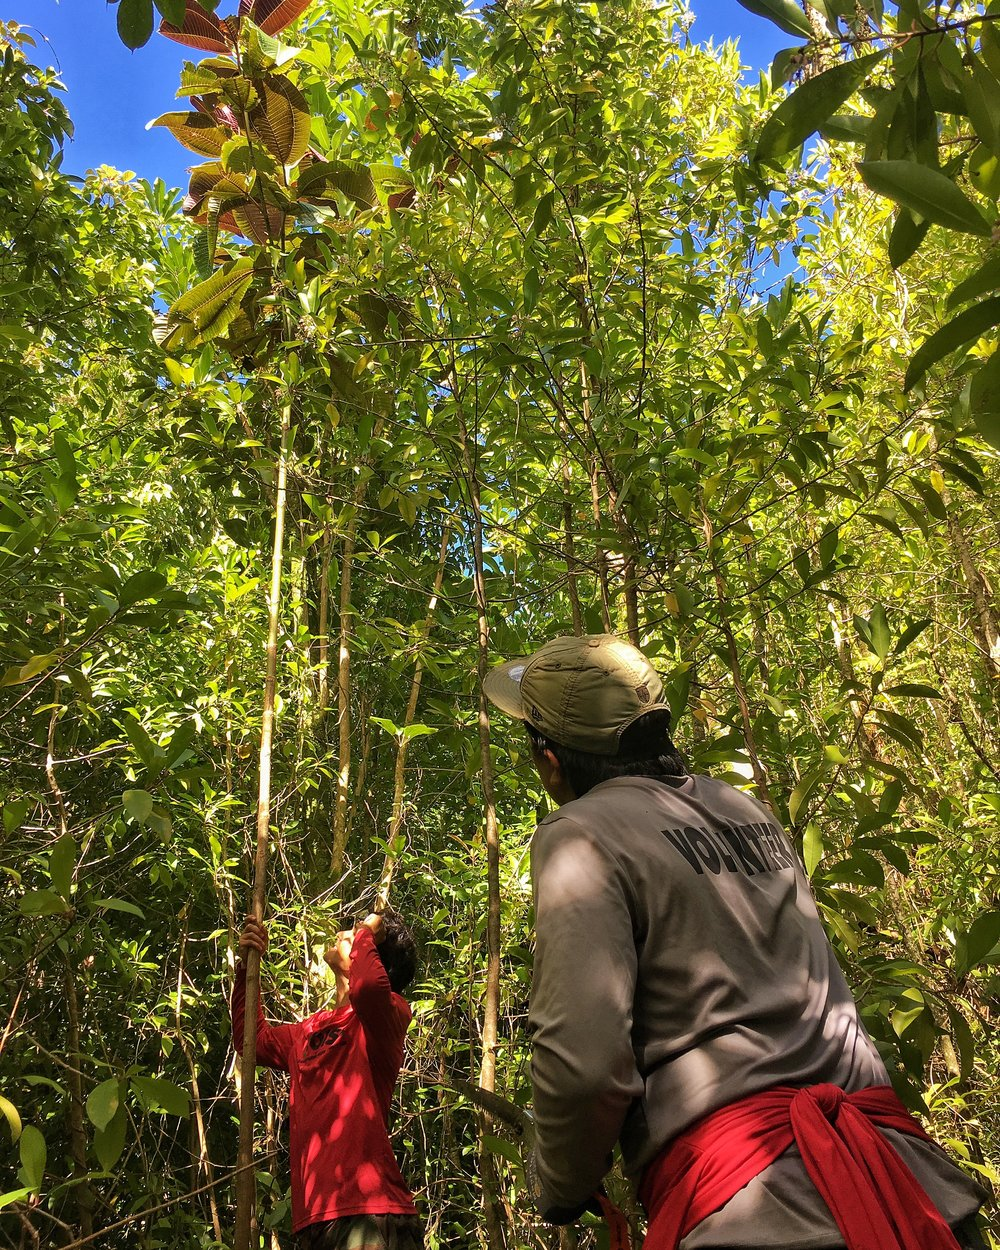 Field crew members at the Oahu Invasive Species Committee look up at a mature 30 ft Miconia calvescens plant that is slowly taking over the canopy.